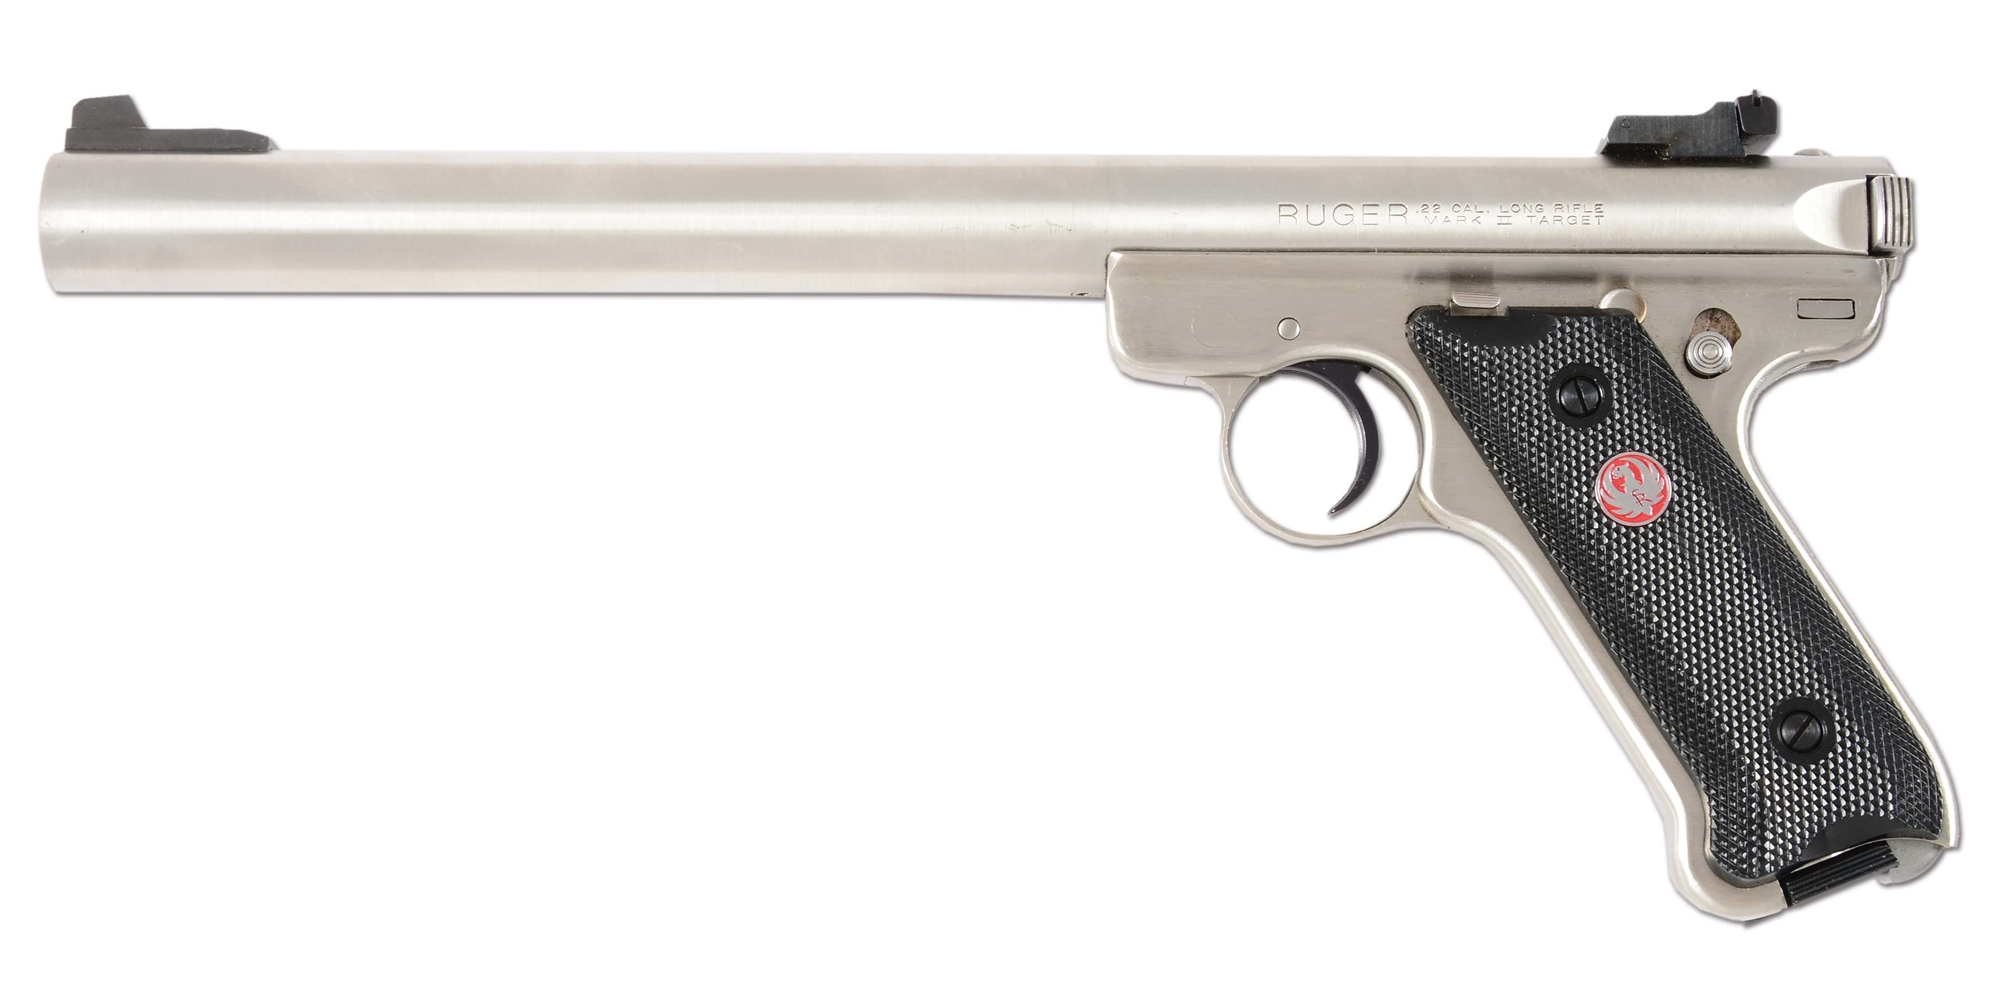 (N) RUGER MK II SEMI-AUTOMATIC PISTOL WITH GEMTECH QUANTUM SUPPRESSOR (SUPPRESSOR).